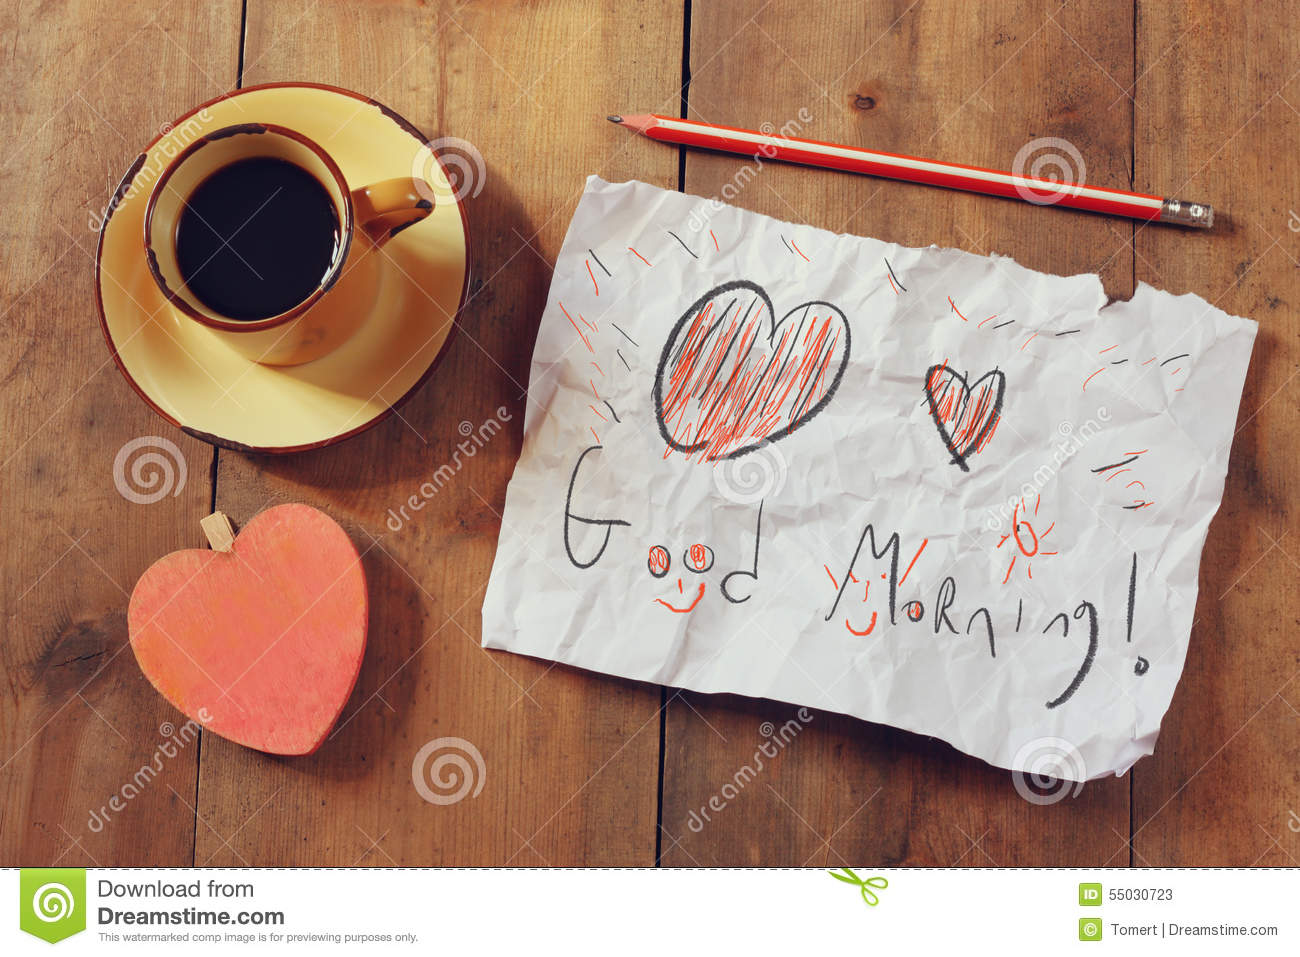 Top View Image Of Paper With The Text Good Morning Next To